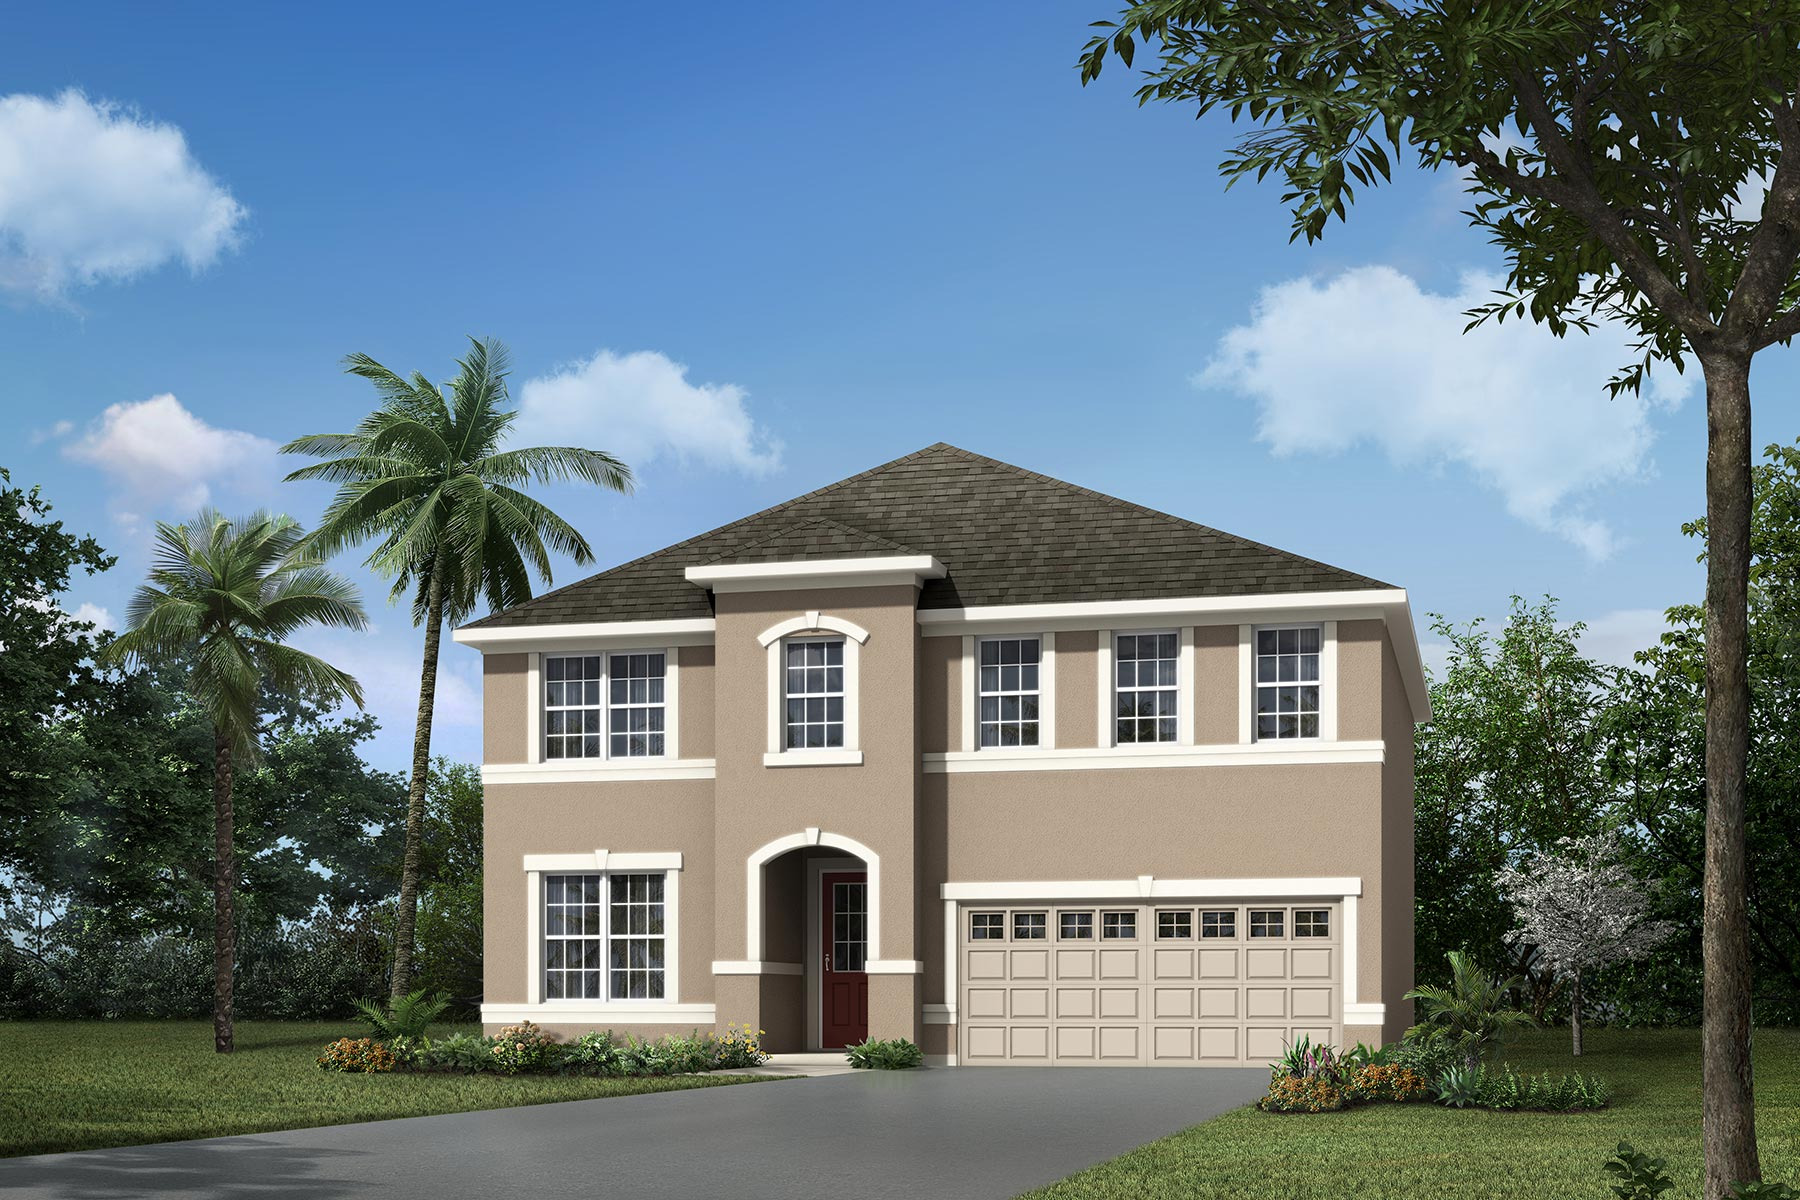 Louisa Plan Elevation Front at Waterbrooke in Clermont Florida by Mattamy Homes